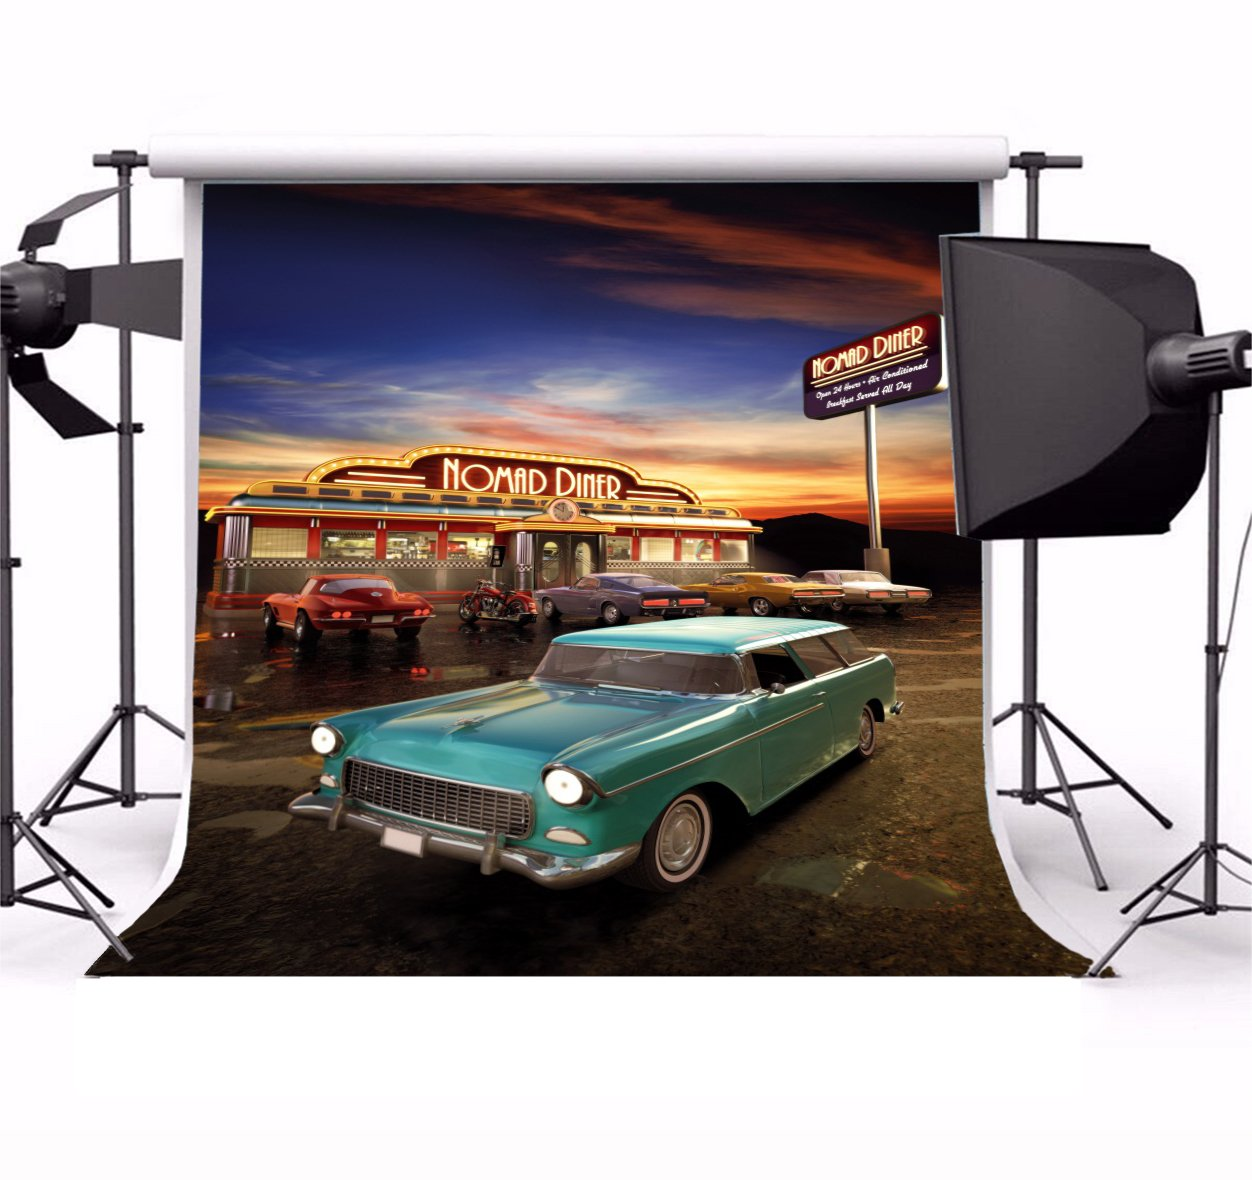 Yeele 10x10ft Retro Nostalgia 50S 60S Backdrop Vintage Eatery Dinner Motorcycle Car Party Banner Photography Background Girl Boy Adult Portrait Photo Booth Shooting Photocall Studio Props by Yeele